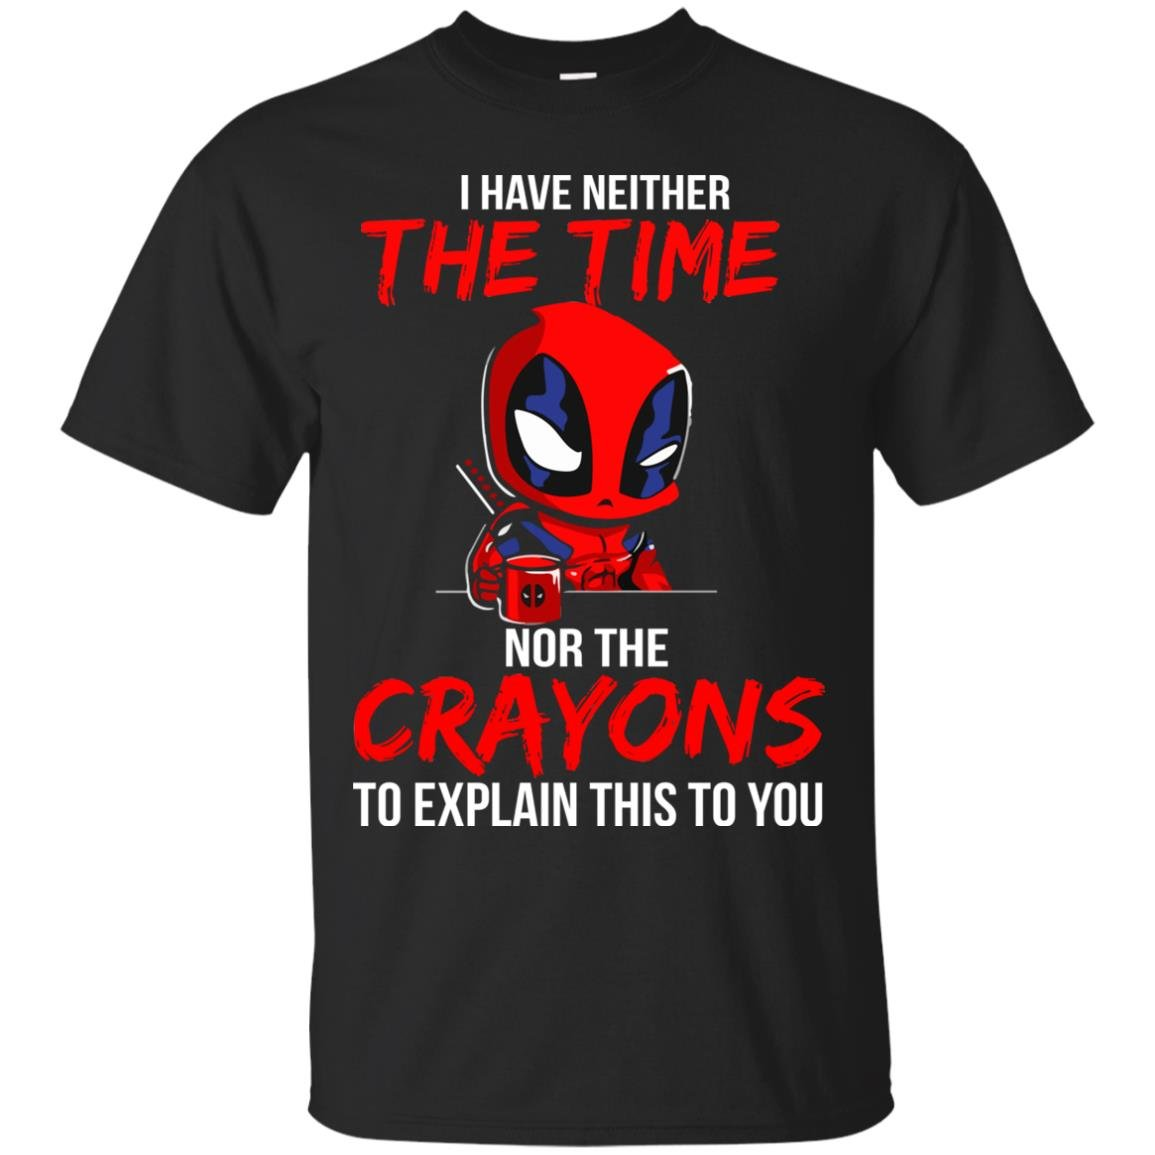 image 5105 - Deadpool: I have neither the time nor the crayons to explain this to you shirt